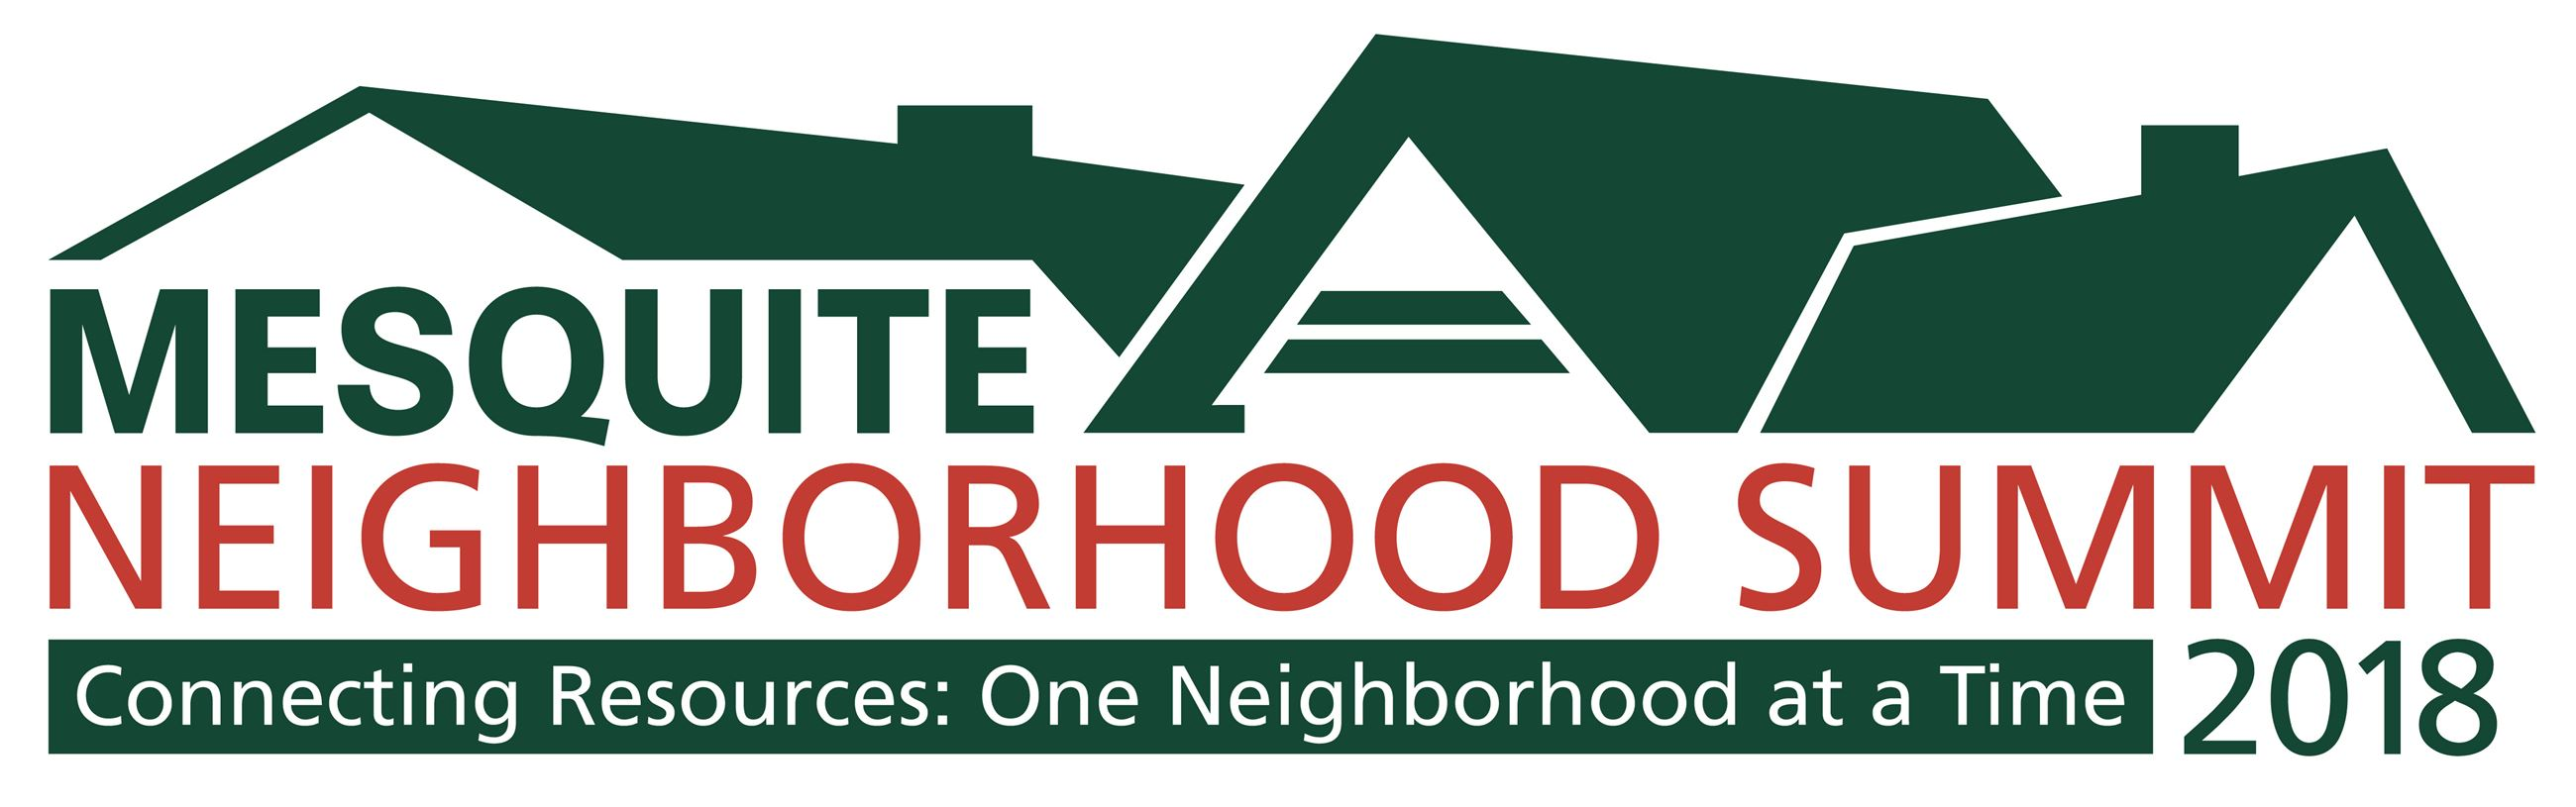 2018 Neighborhood Summit Logo-01